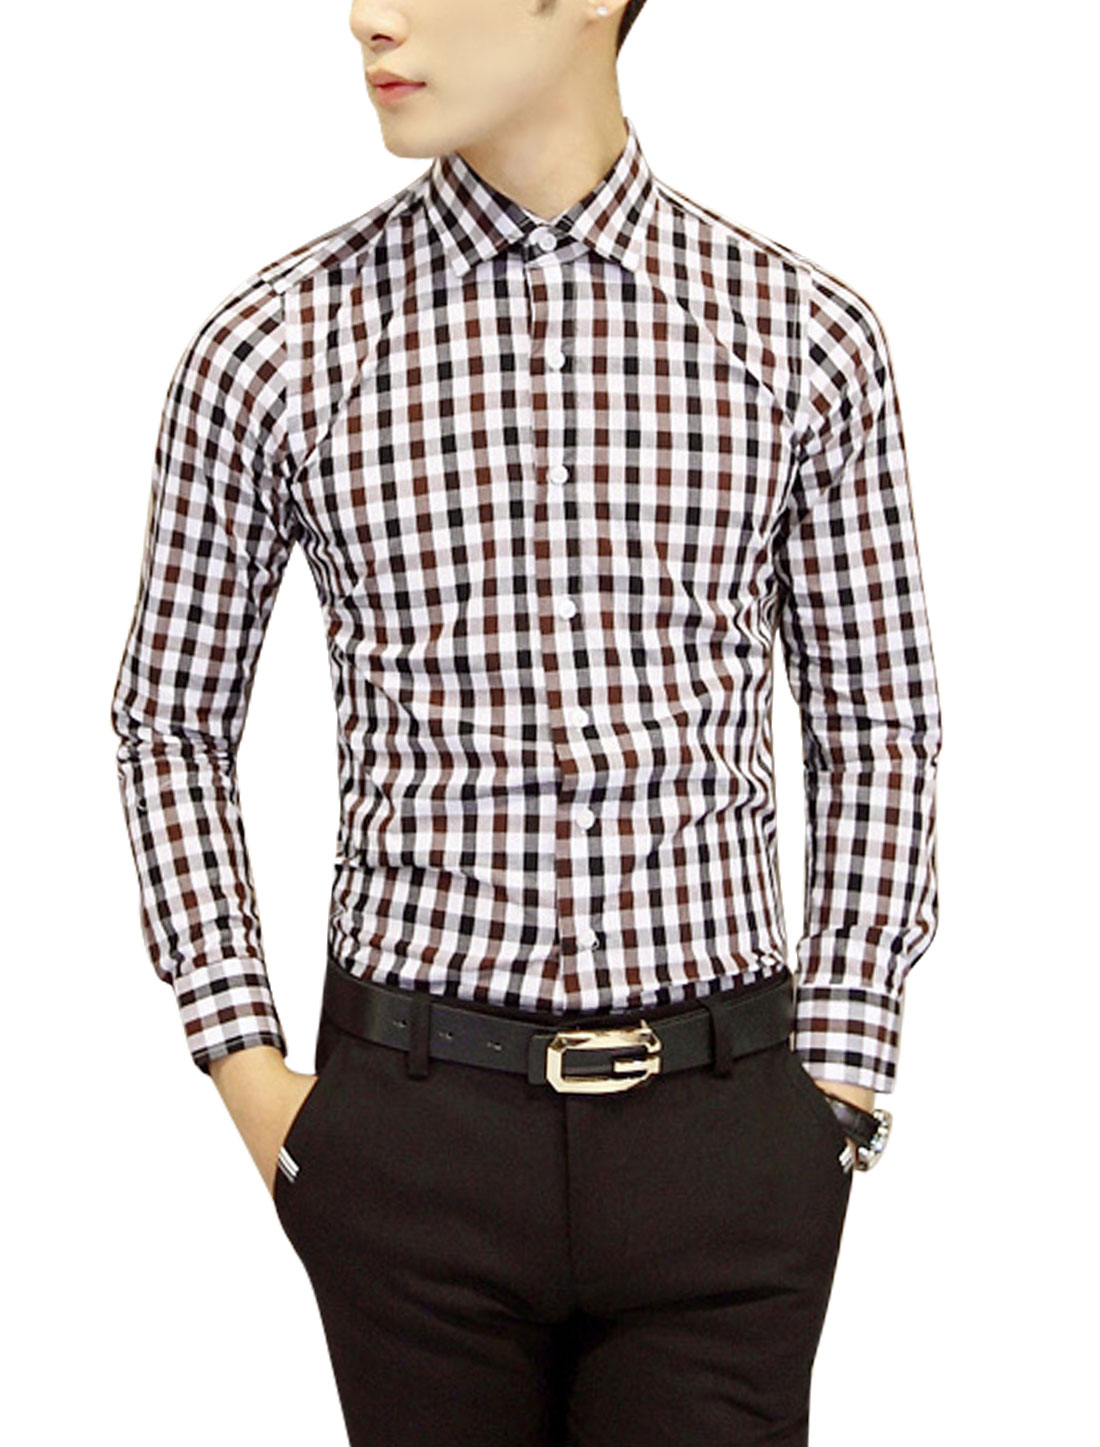 Point Collar Plaids Button Cuffs Casual Shirt for Men Brown White S